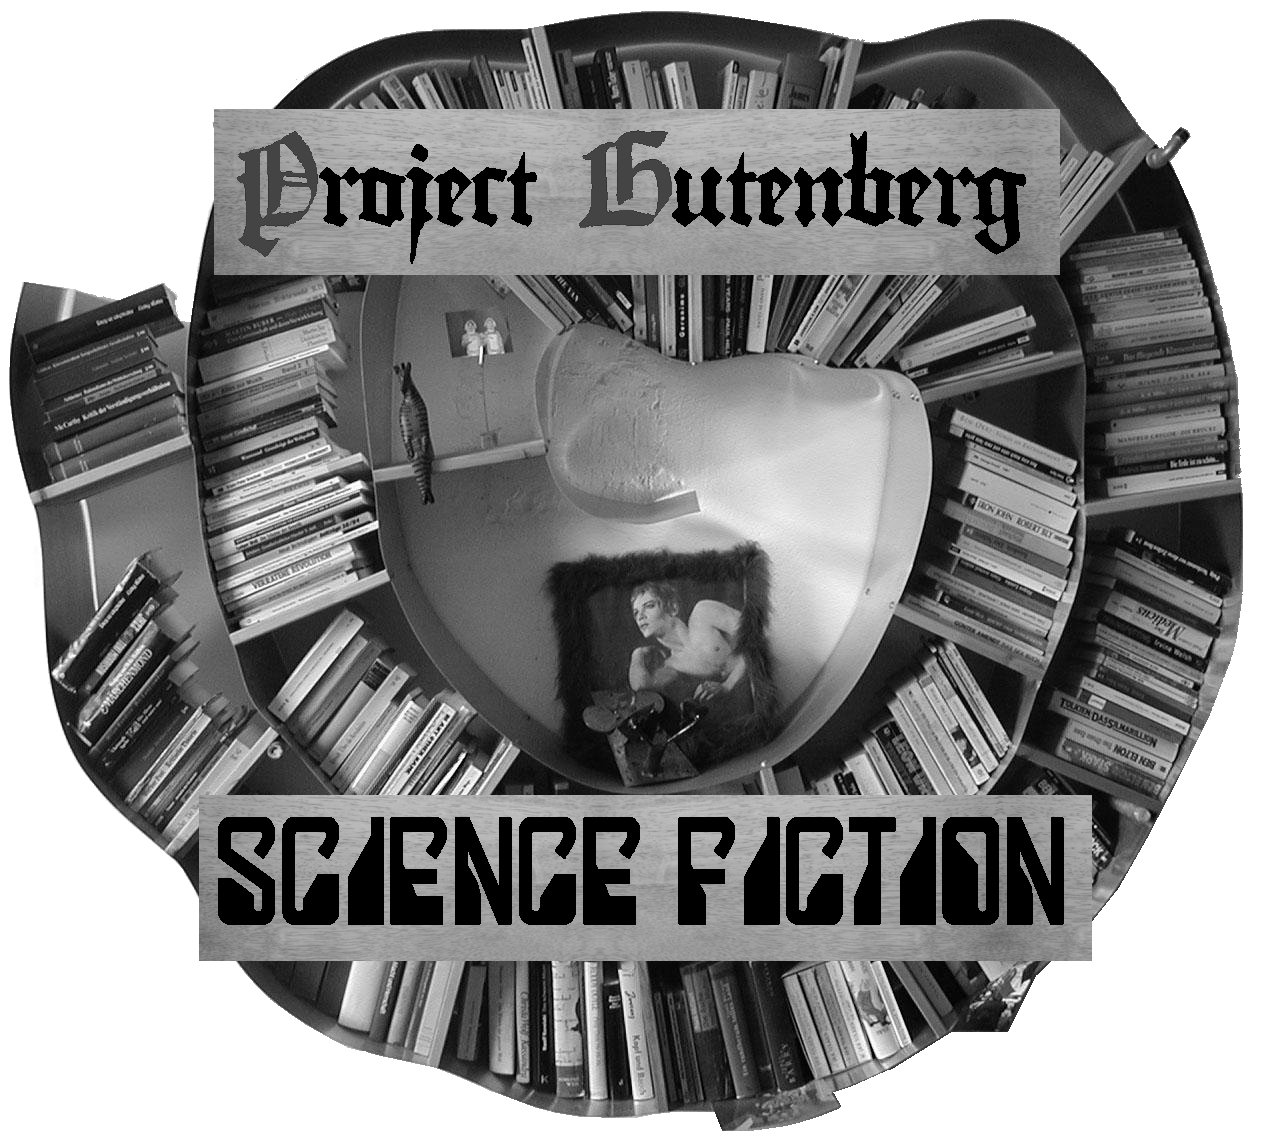 Science Fiction (Bookshelf) - Gutenberg